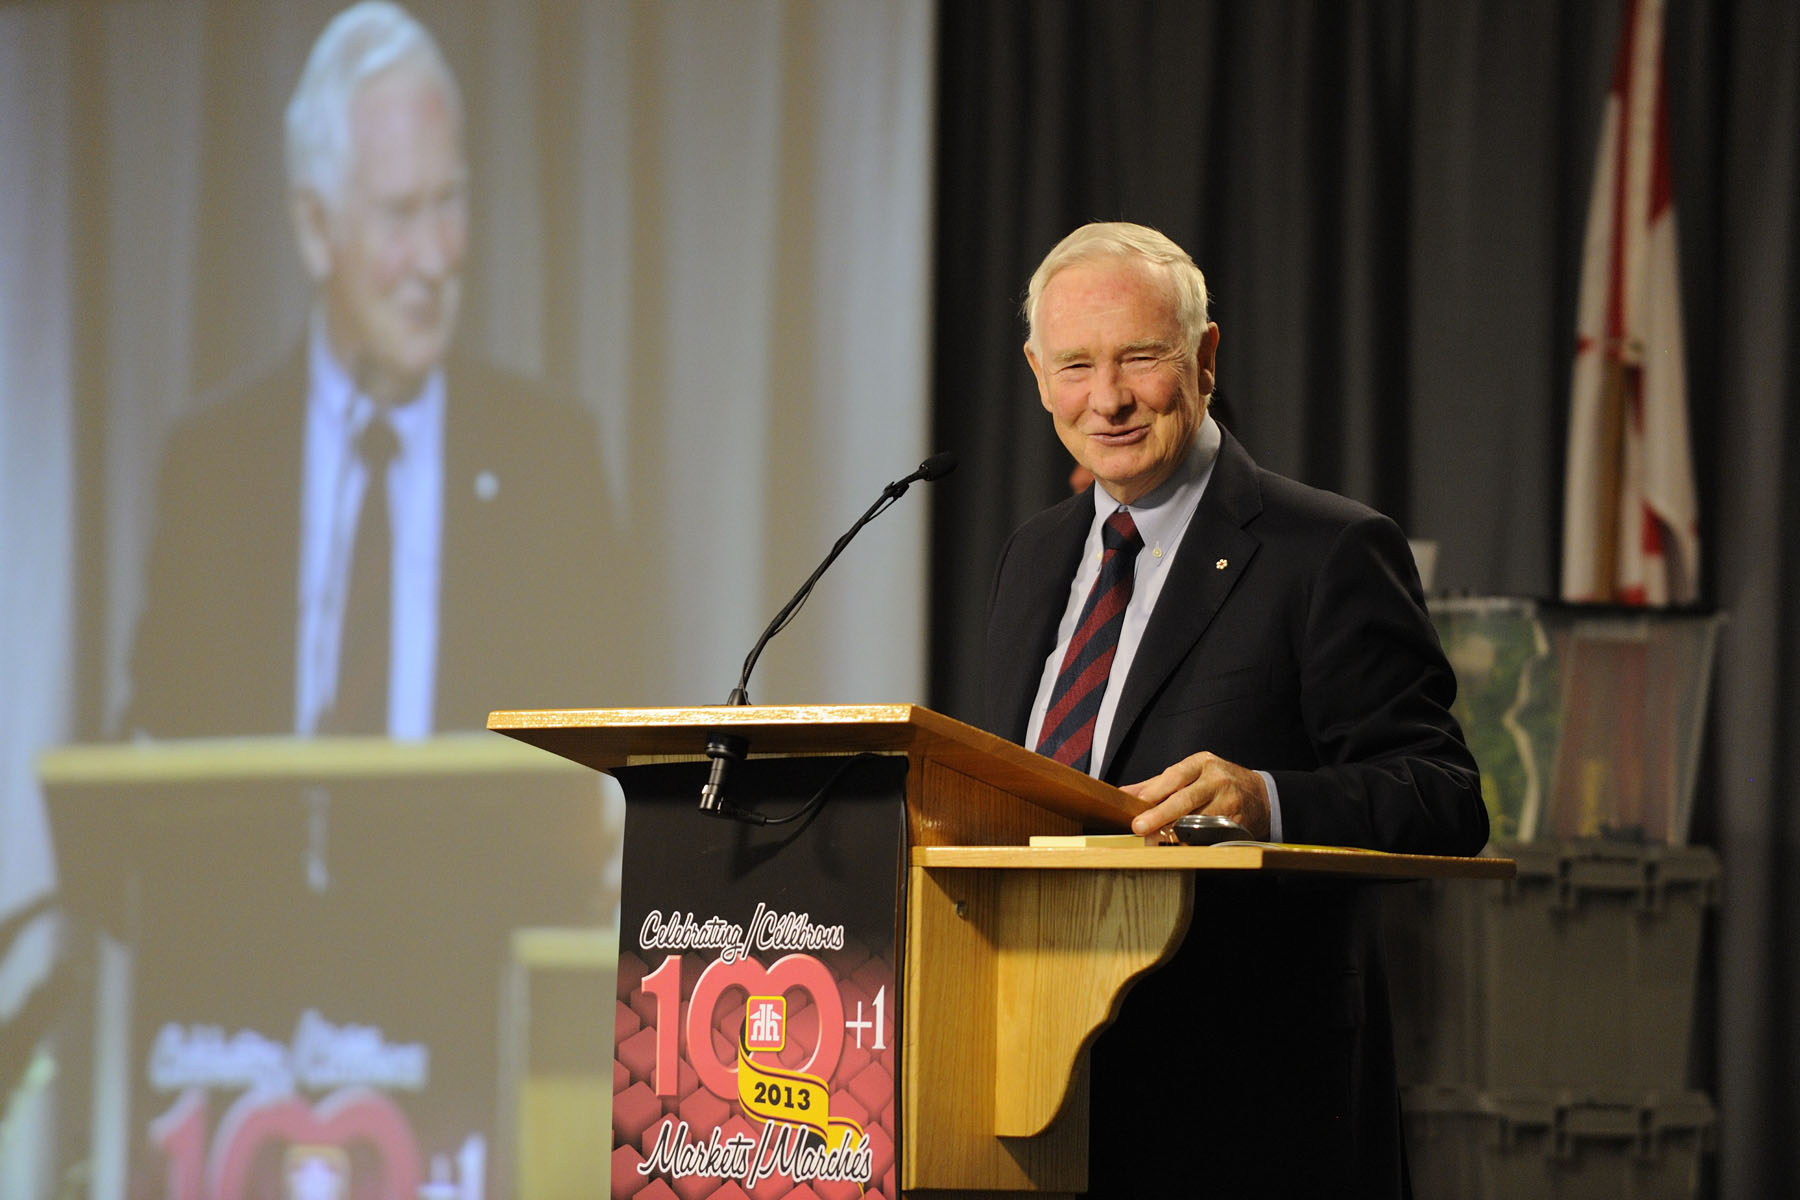 During a one-day visit to the Waterloo region, His Excellency the Right Honourable David Johnston, Governor General of Canada, delivered a speech at the Home Hardware Stores Limited Annual Fall Market. In his speech, he will underscore Home Hardware's ongoing commitment to serving local communities across the country.